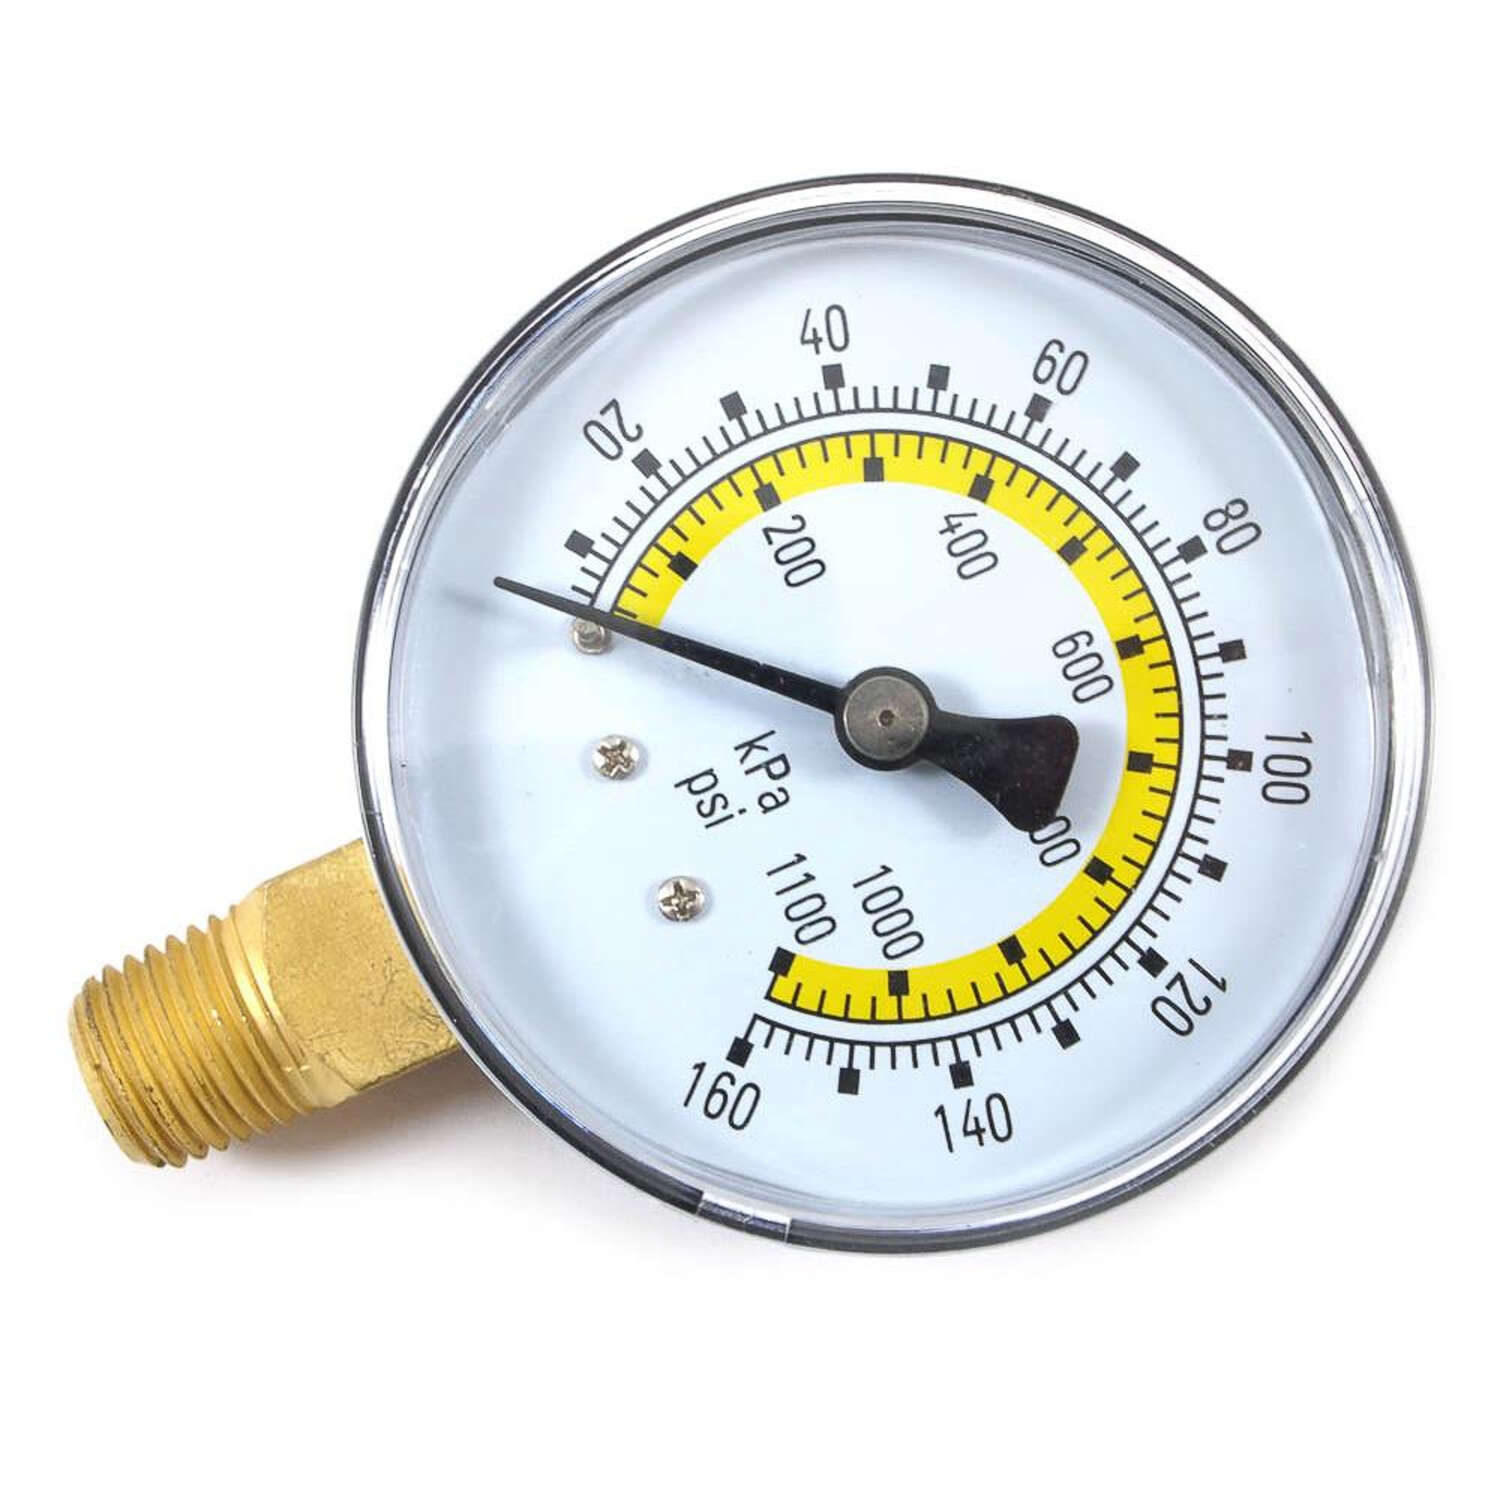 Forney  Plastic  Bottom Mount  Air Pressure Gauge  1/4 in. NPT  160 psi 1 pc.